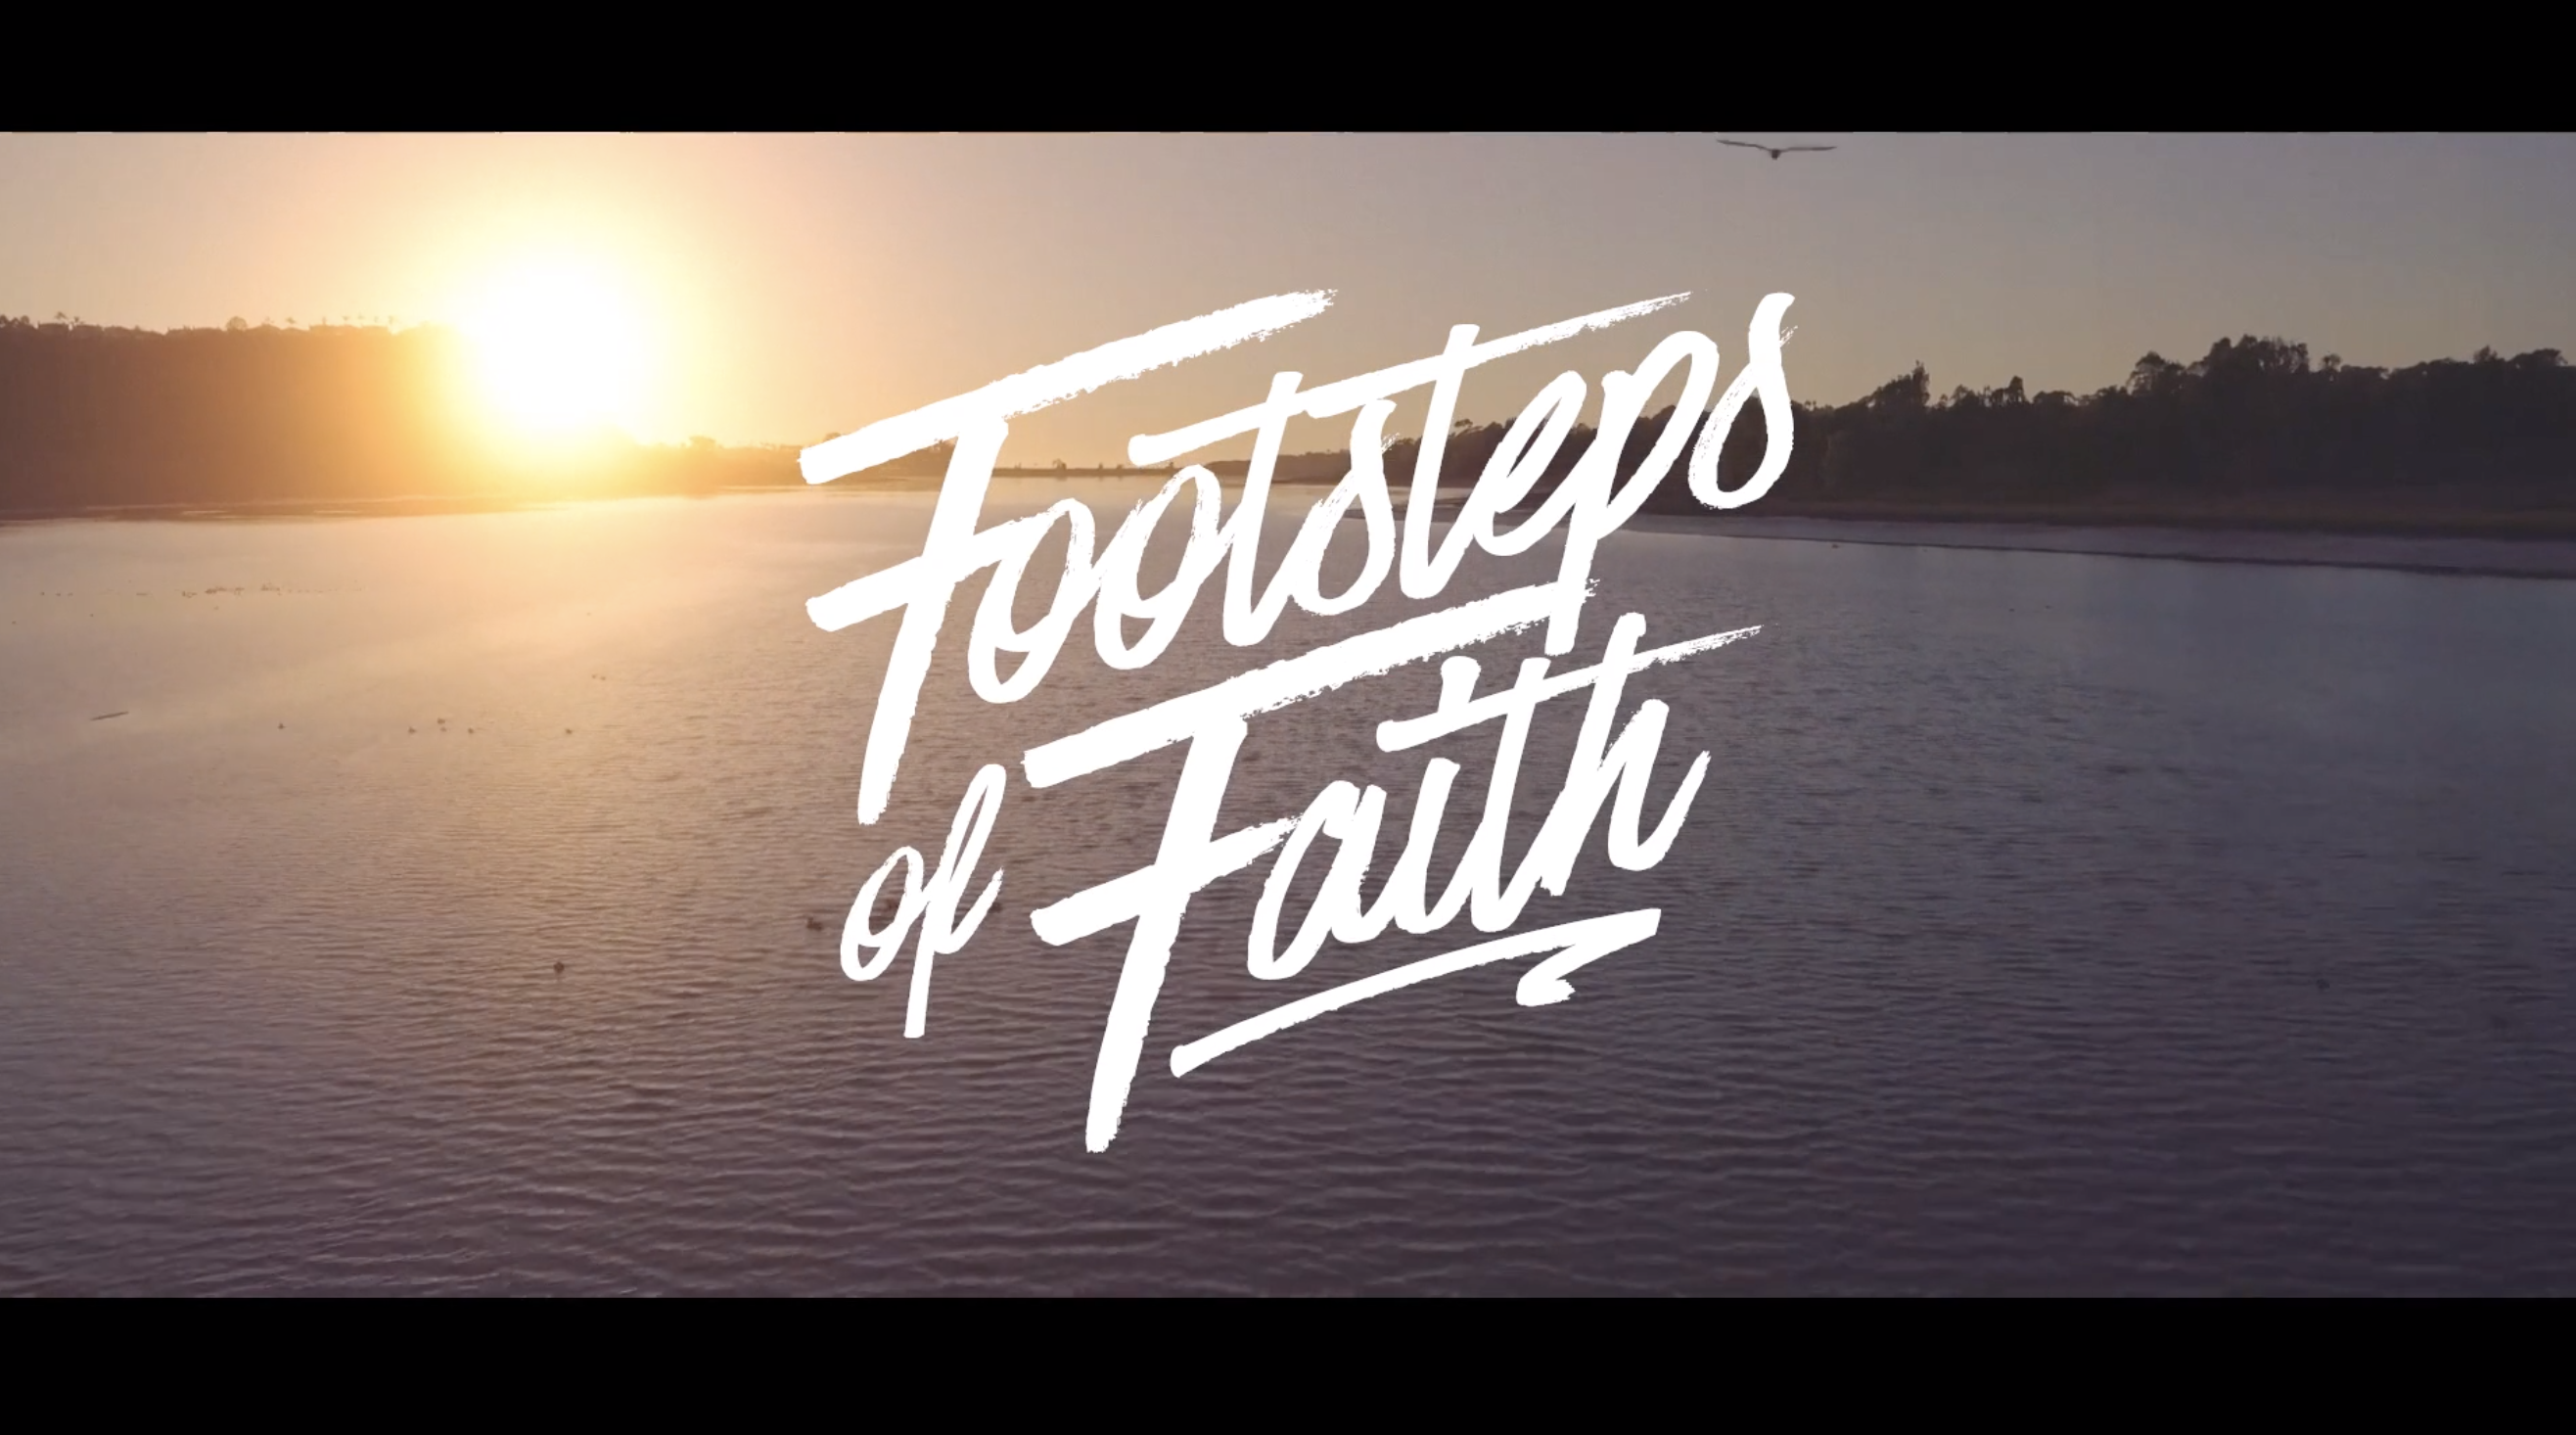 Current Sermon Series: Footsteps of Faith